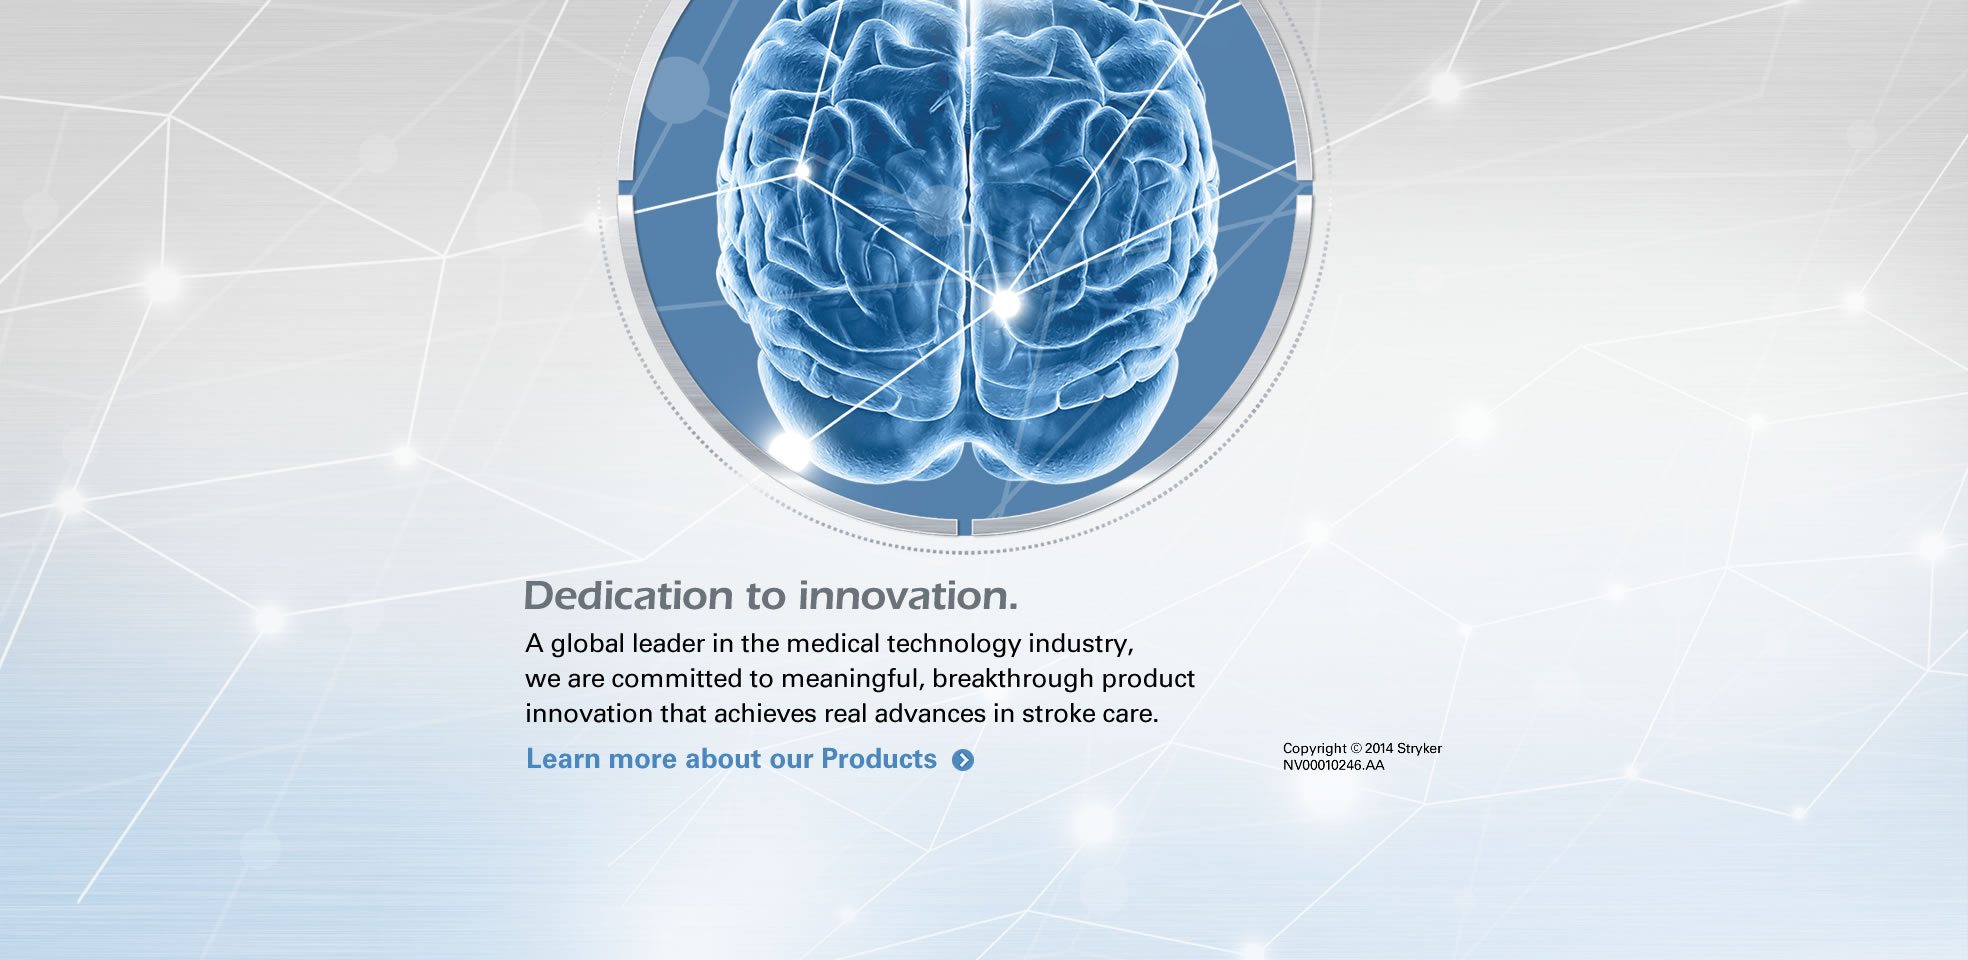 Dedication to innovation. Learn more about our products.  | Click for More